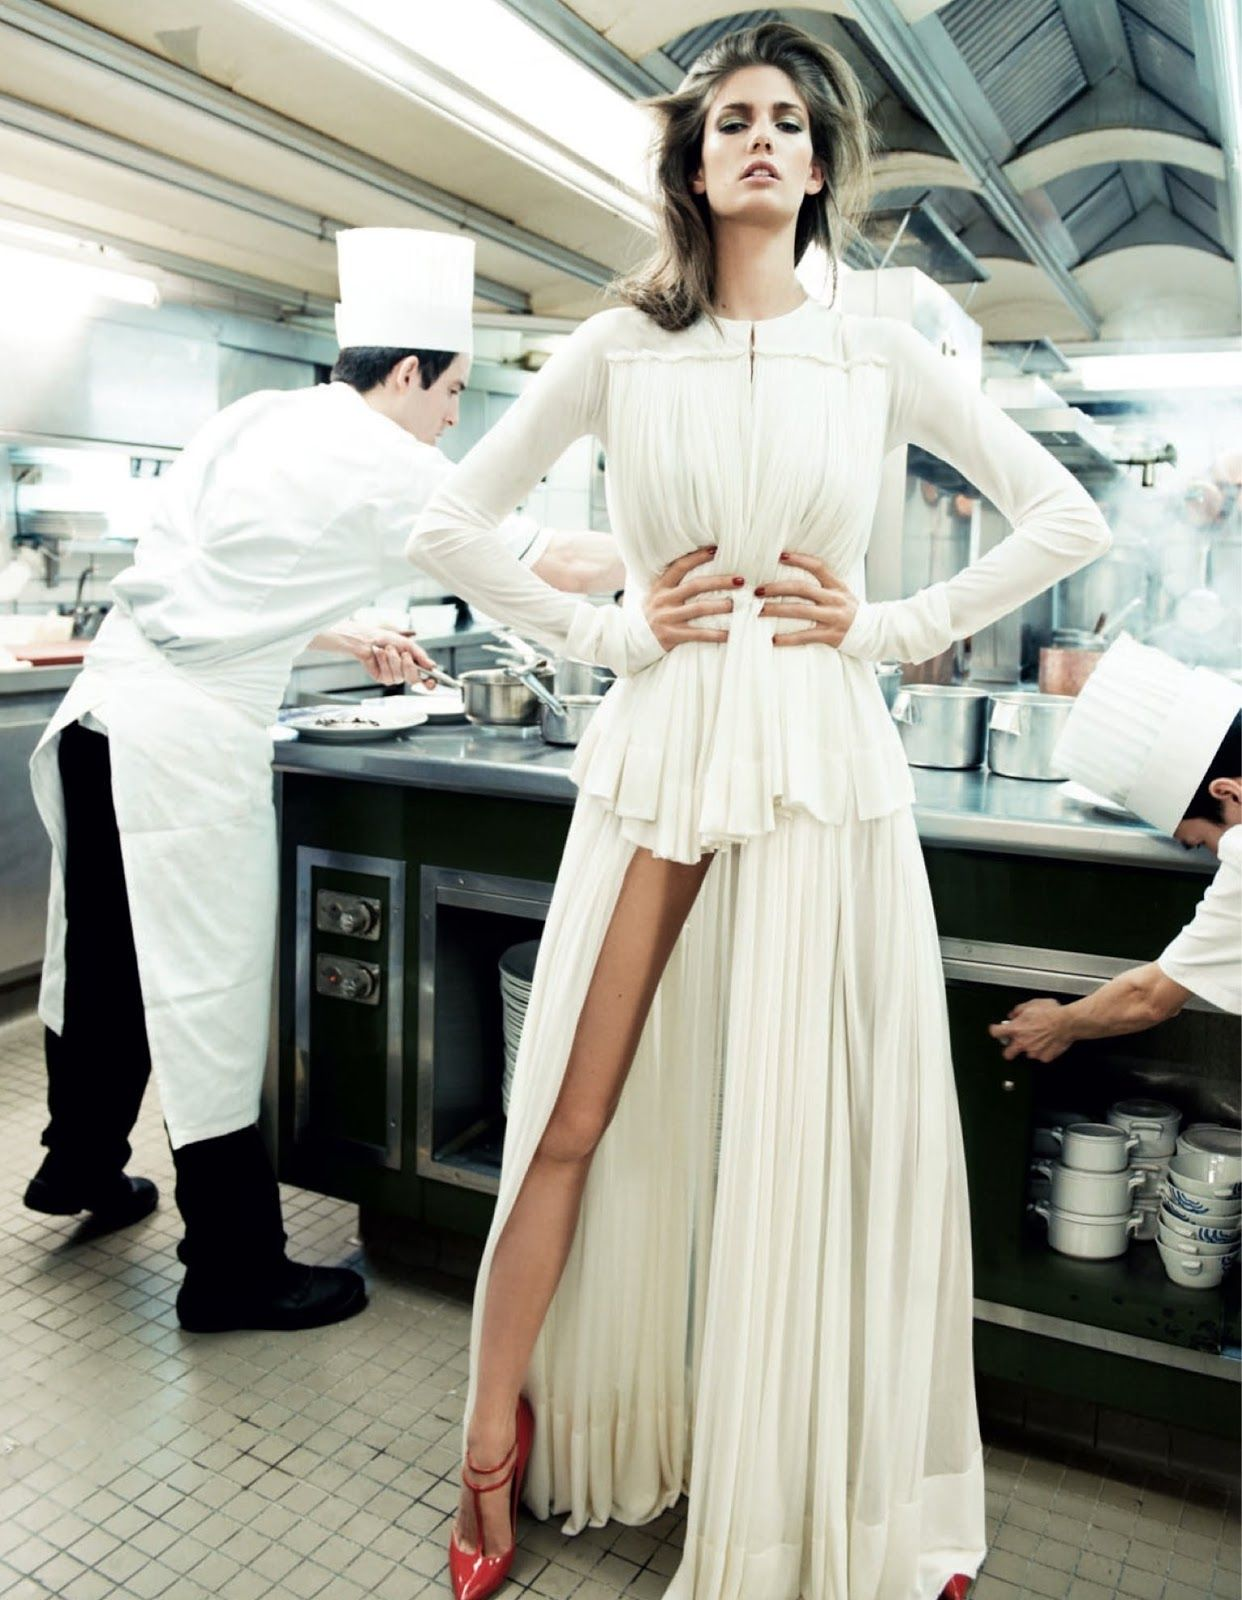 new menu (couture): kendra spears by claudia knoepfel & stefan indlekofer for vogue russia april 2013 | visual optimism; fashion editorials, shows, campaigns & more!